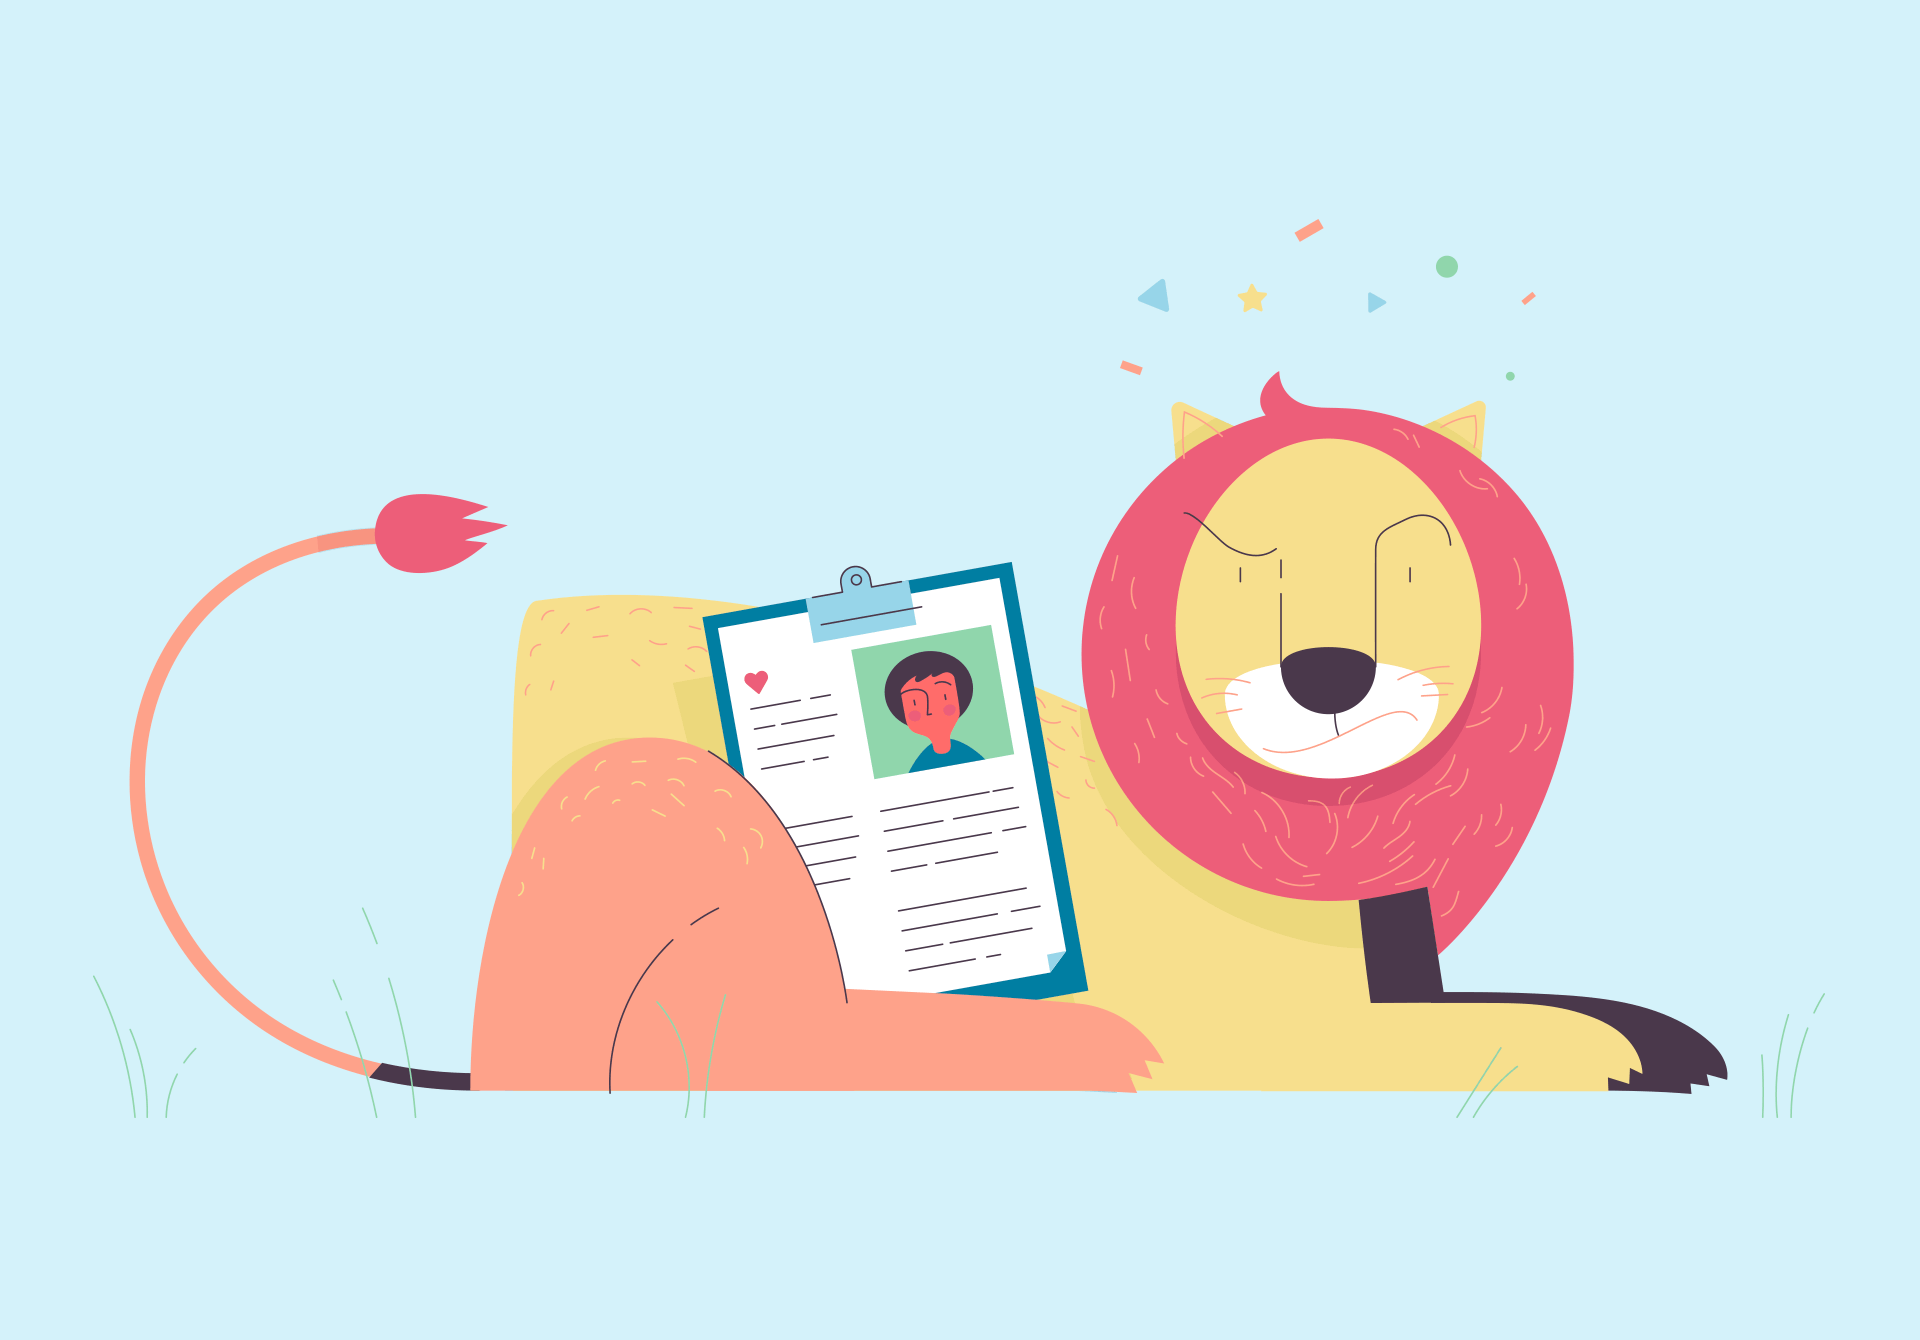 Ilustration of a lion guarding a clipboard with patient information